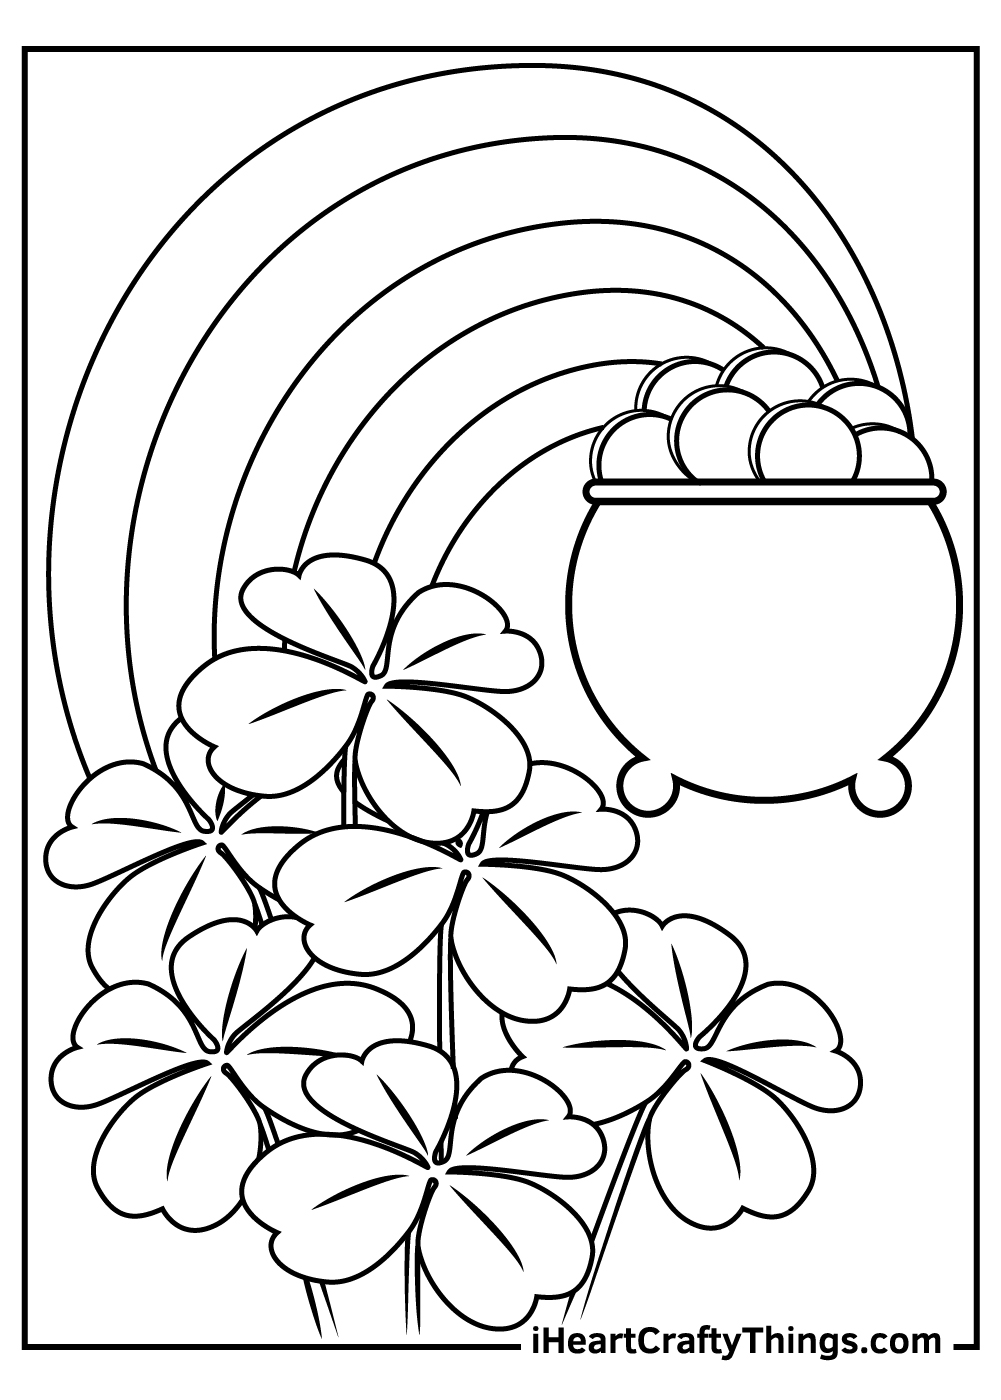 st patrick's day shamrock coloring pages